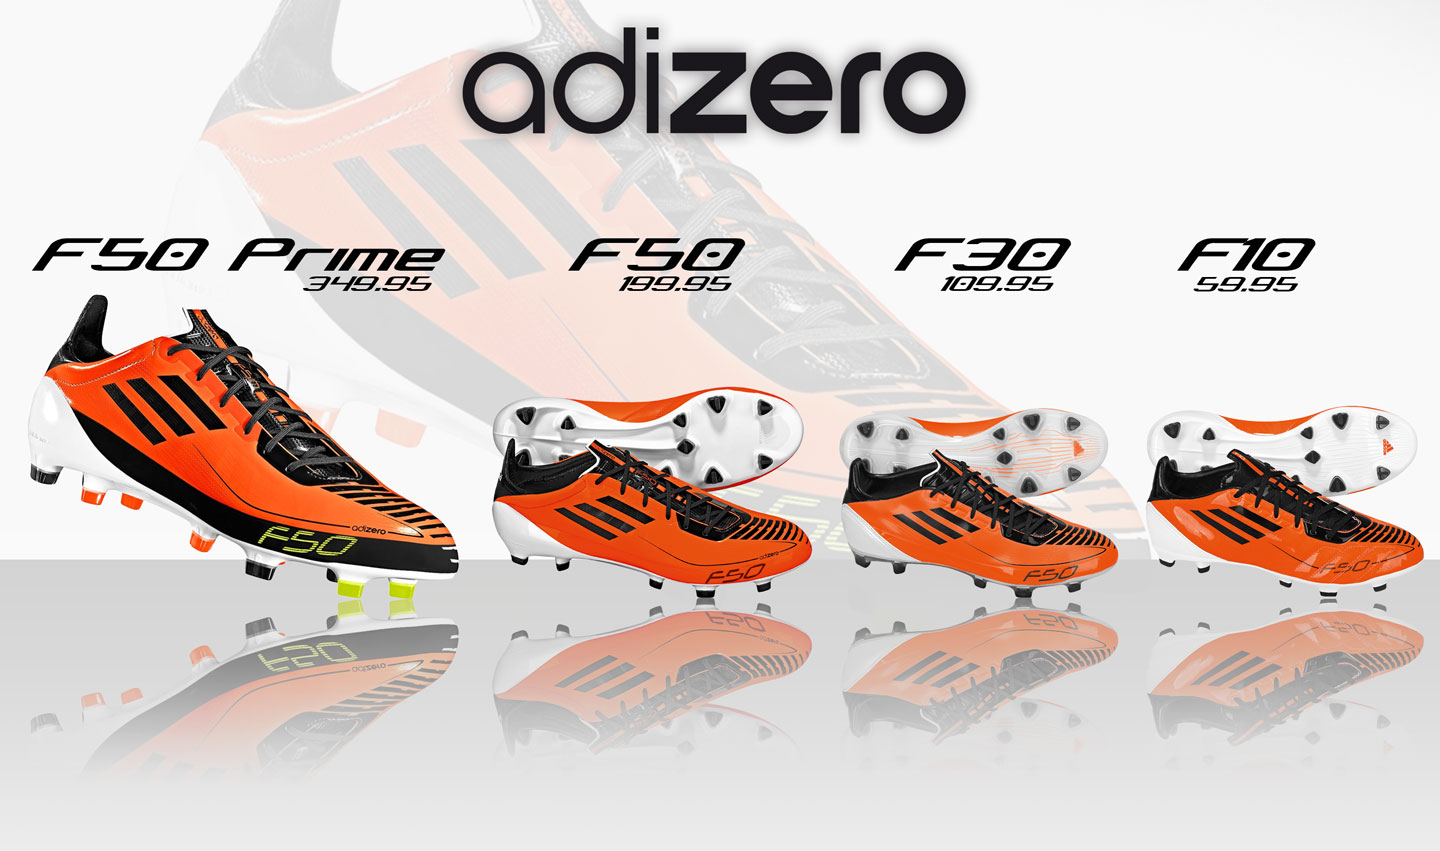 f084a2f170f4 Images of the Prime and adizero II by adidas. These are new color ways of  what color the boots might come out as.